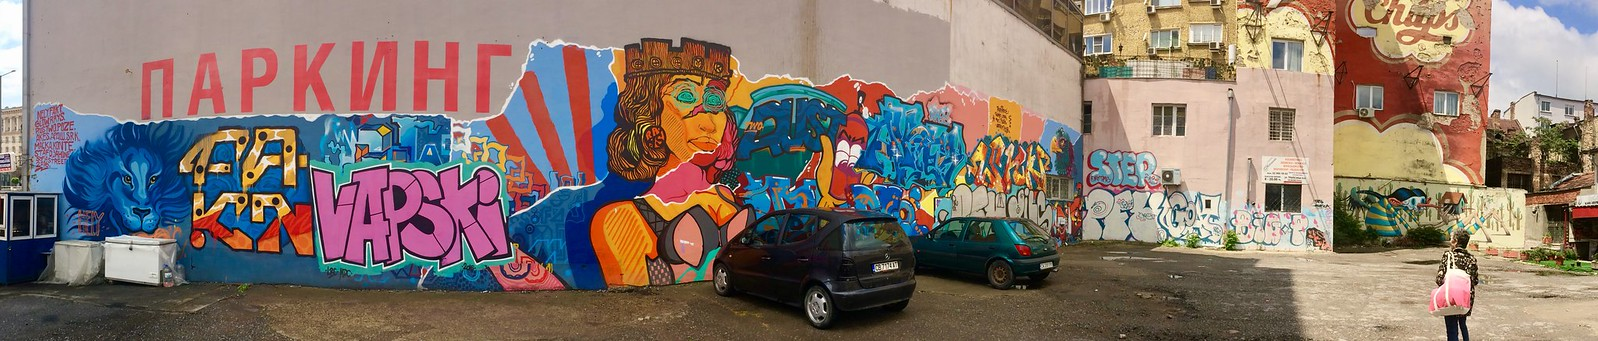 201705 - Balkans - Full Parking Lot Graffiti - Sofia - Oborishte - Sofia, May 21, 2017